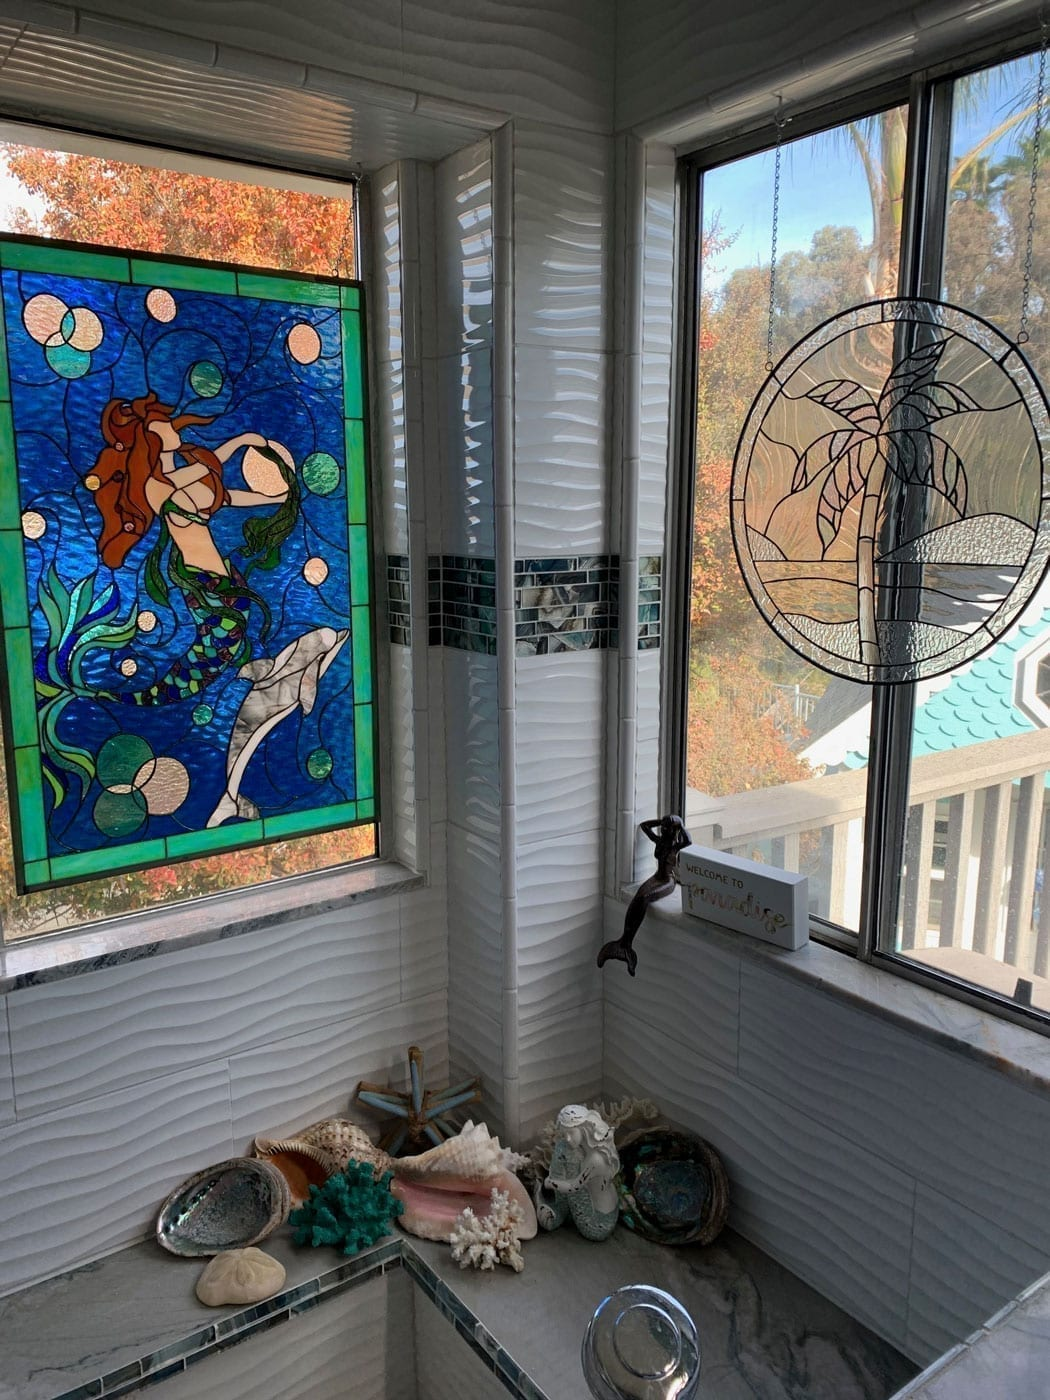 Mystical Mermaid & Dolphin Stained Glass Window minimal install